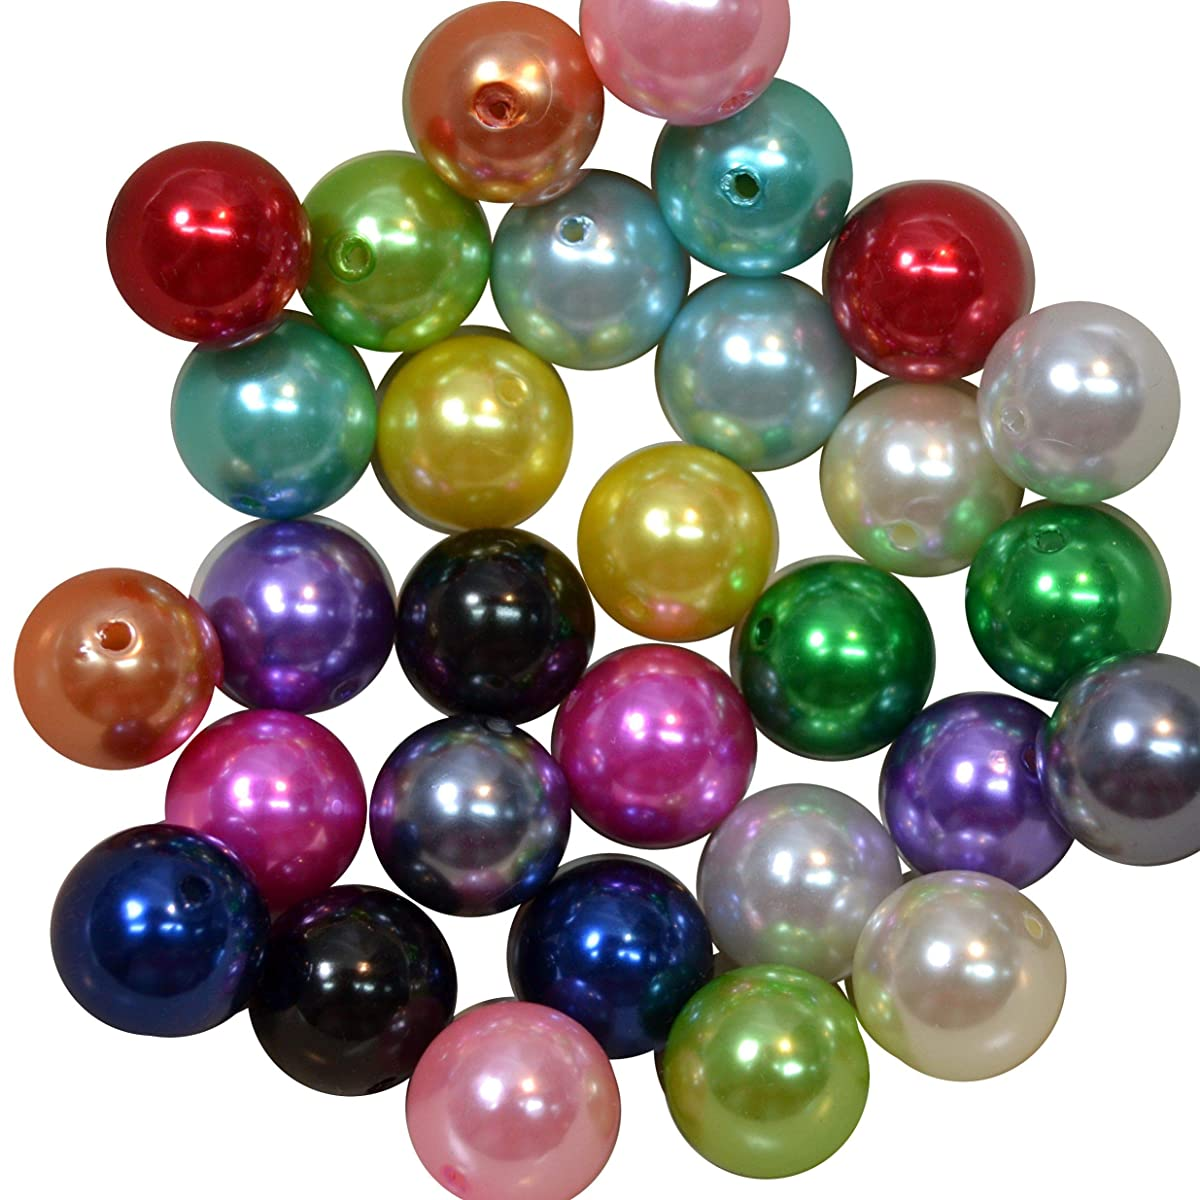 20mm Bulk Mix of Faux Pearl Chunky Bubblegum Beads 15 Colors 120 Acrylic Gumball Beads